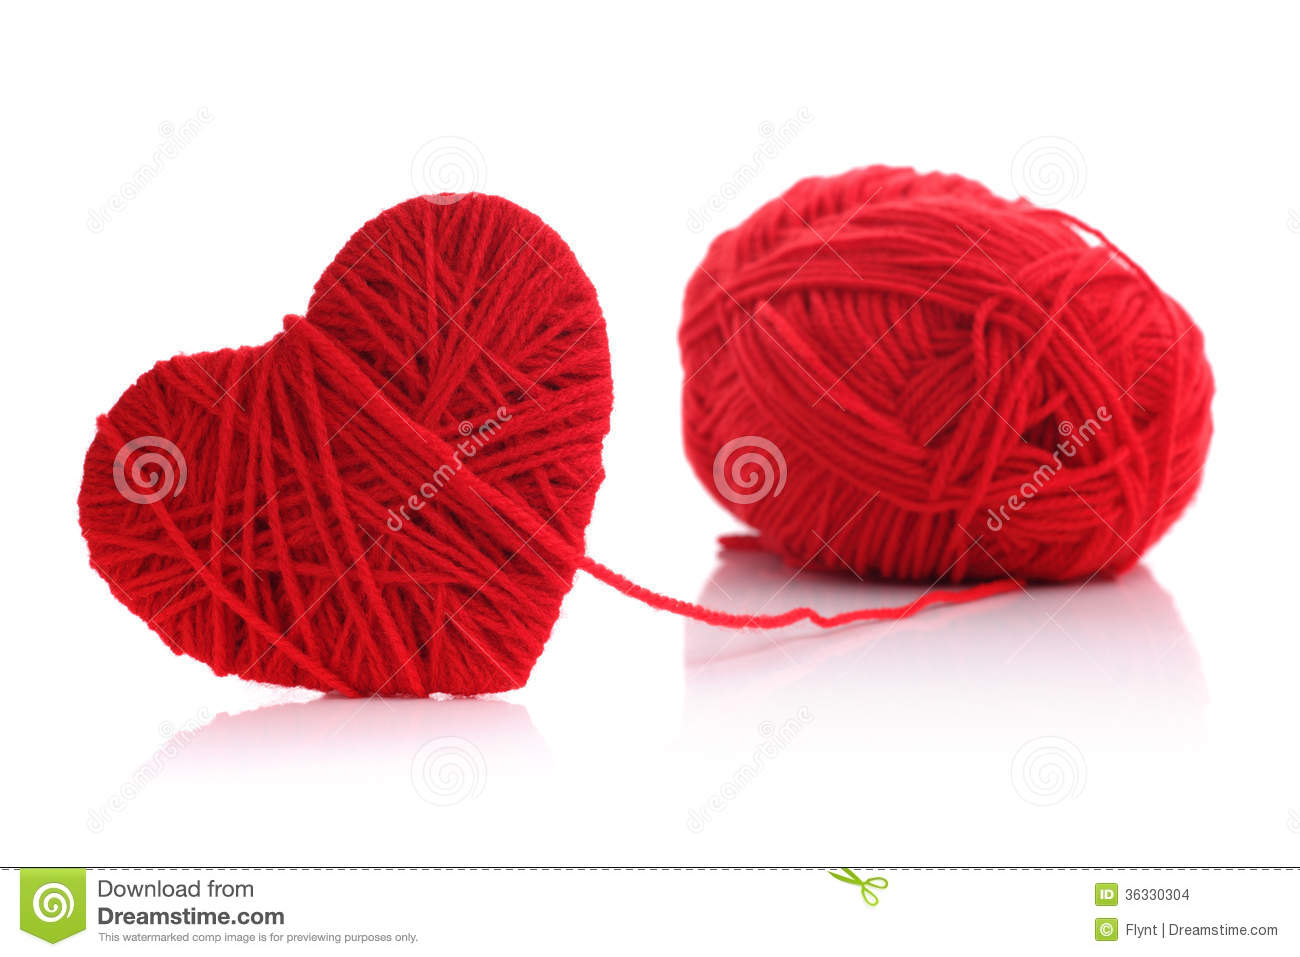 Ice Skates For Sale >> Yarn Of Wool In Heart Shape Symbol Stock Images - Image ...